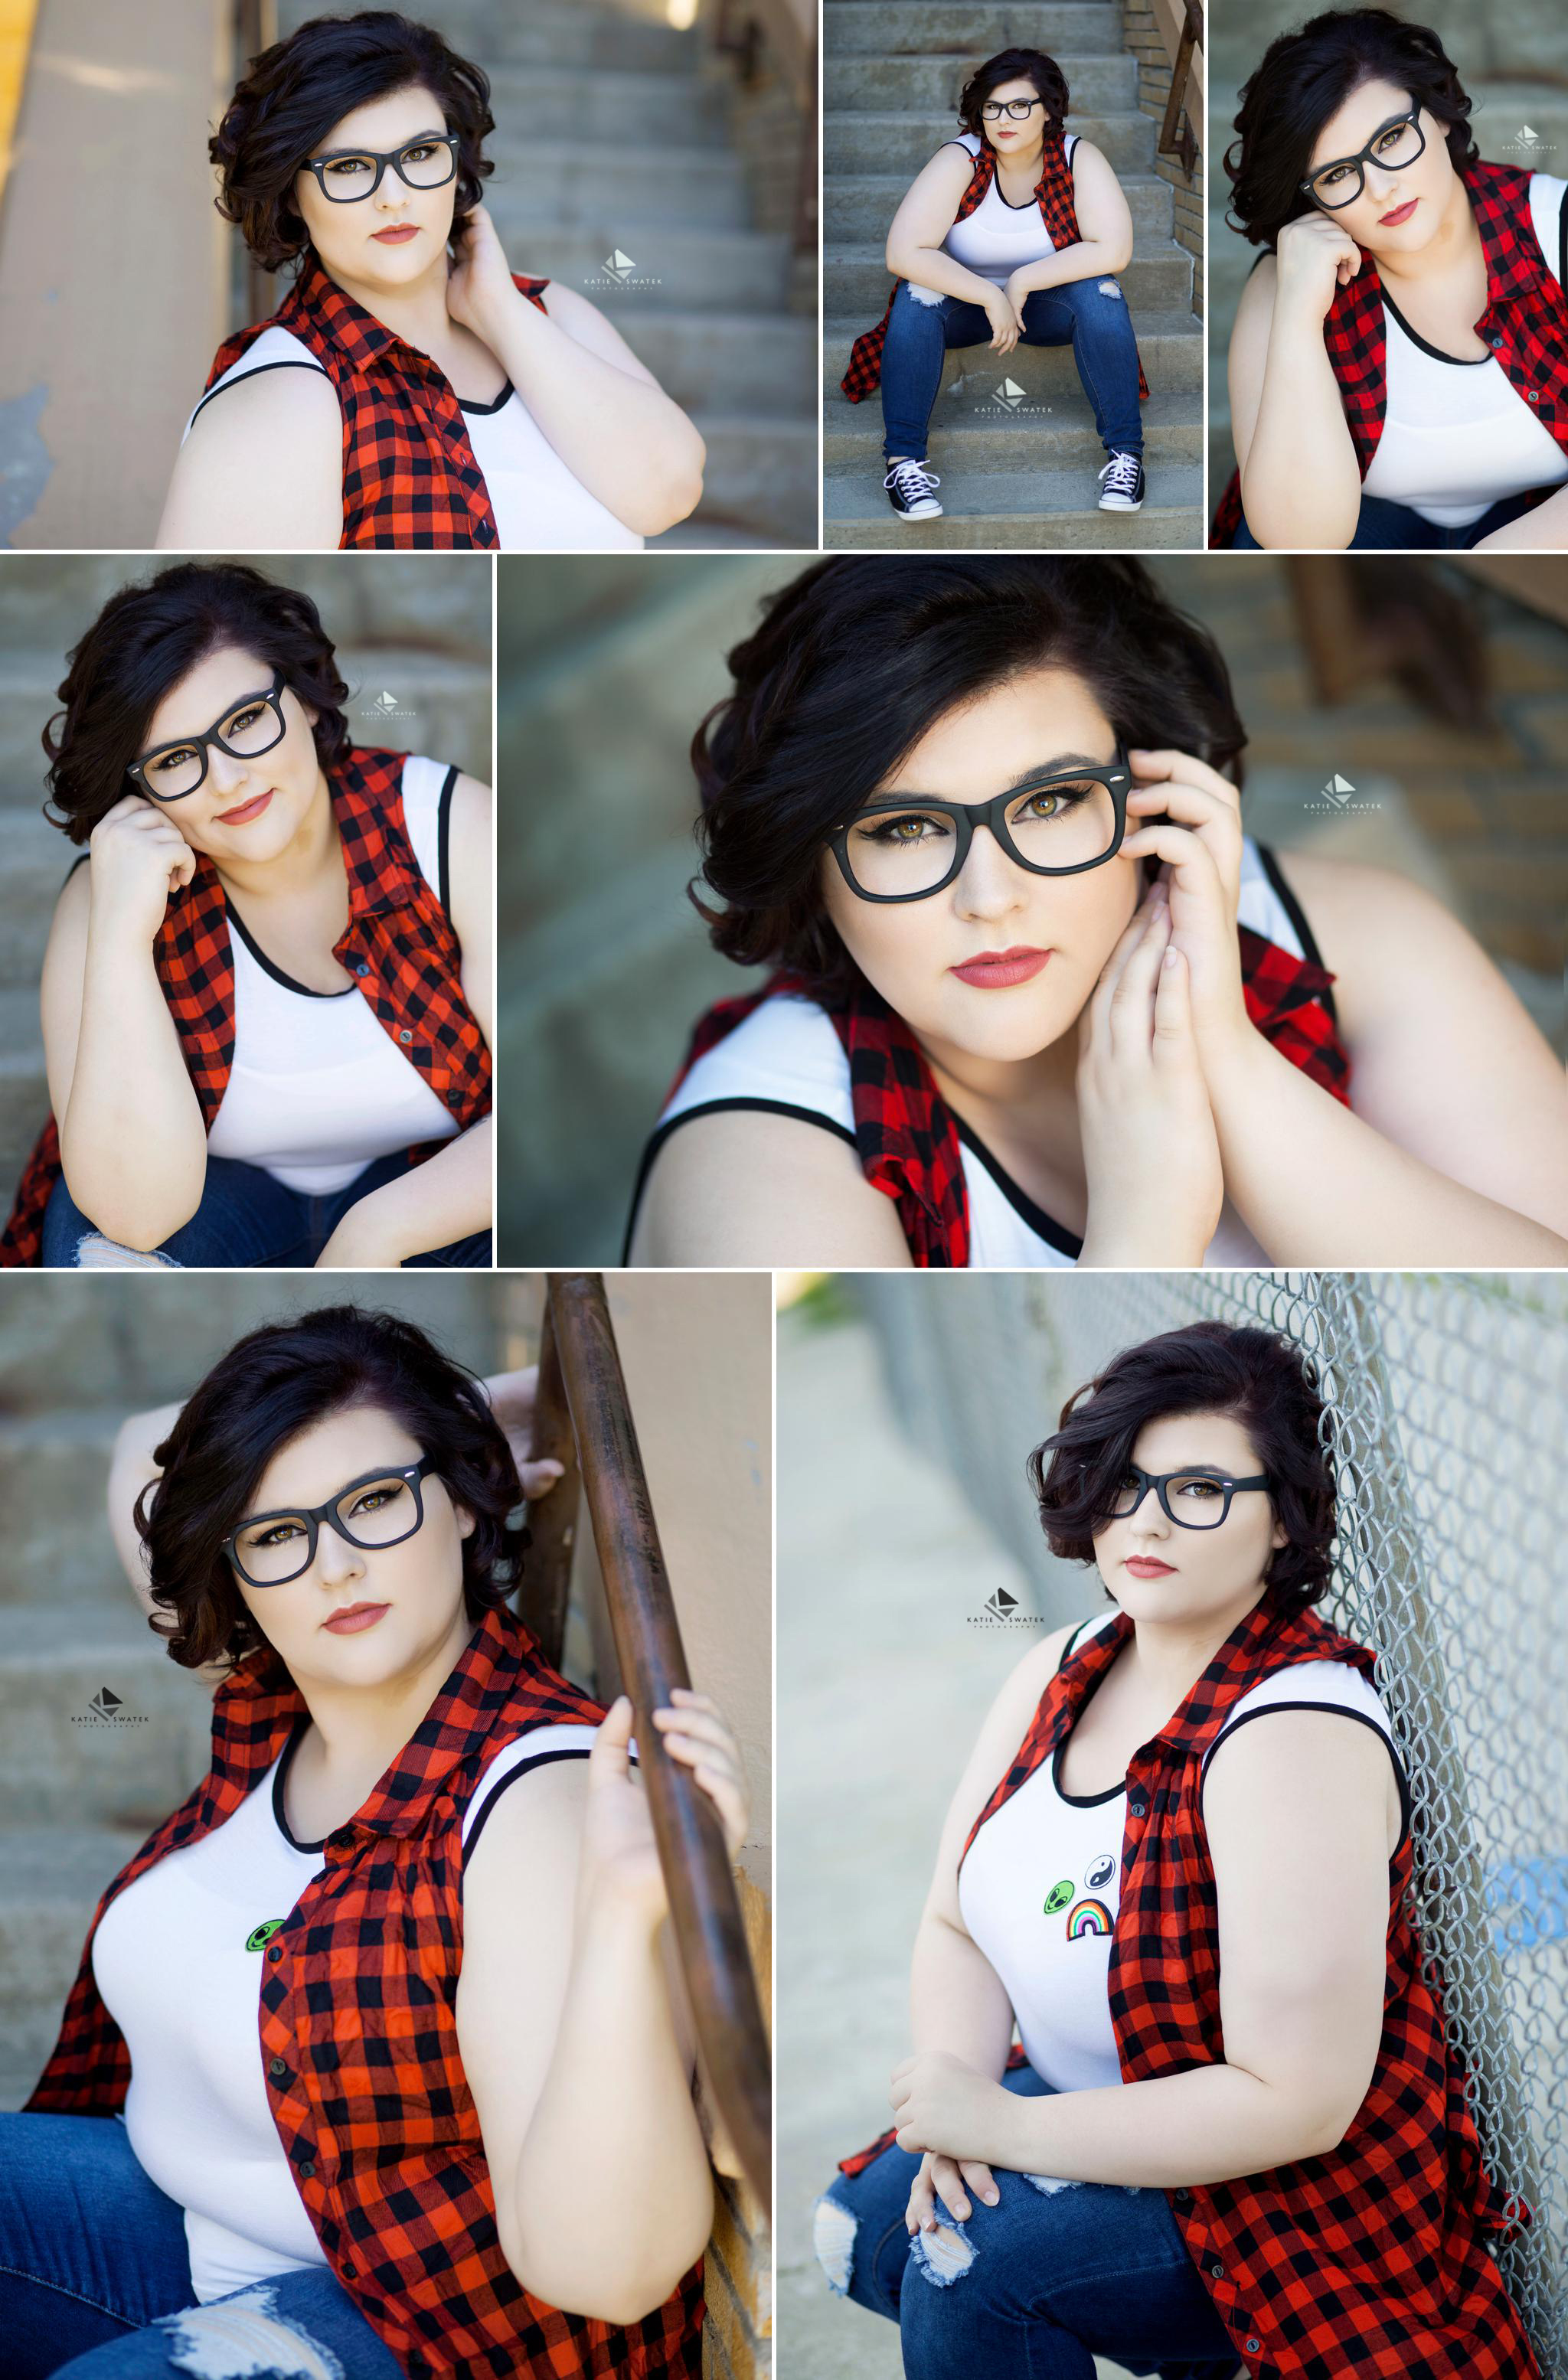 brunette senior girl in a white tank top with a red and black buffalo check kimono